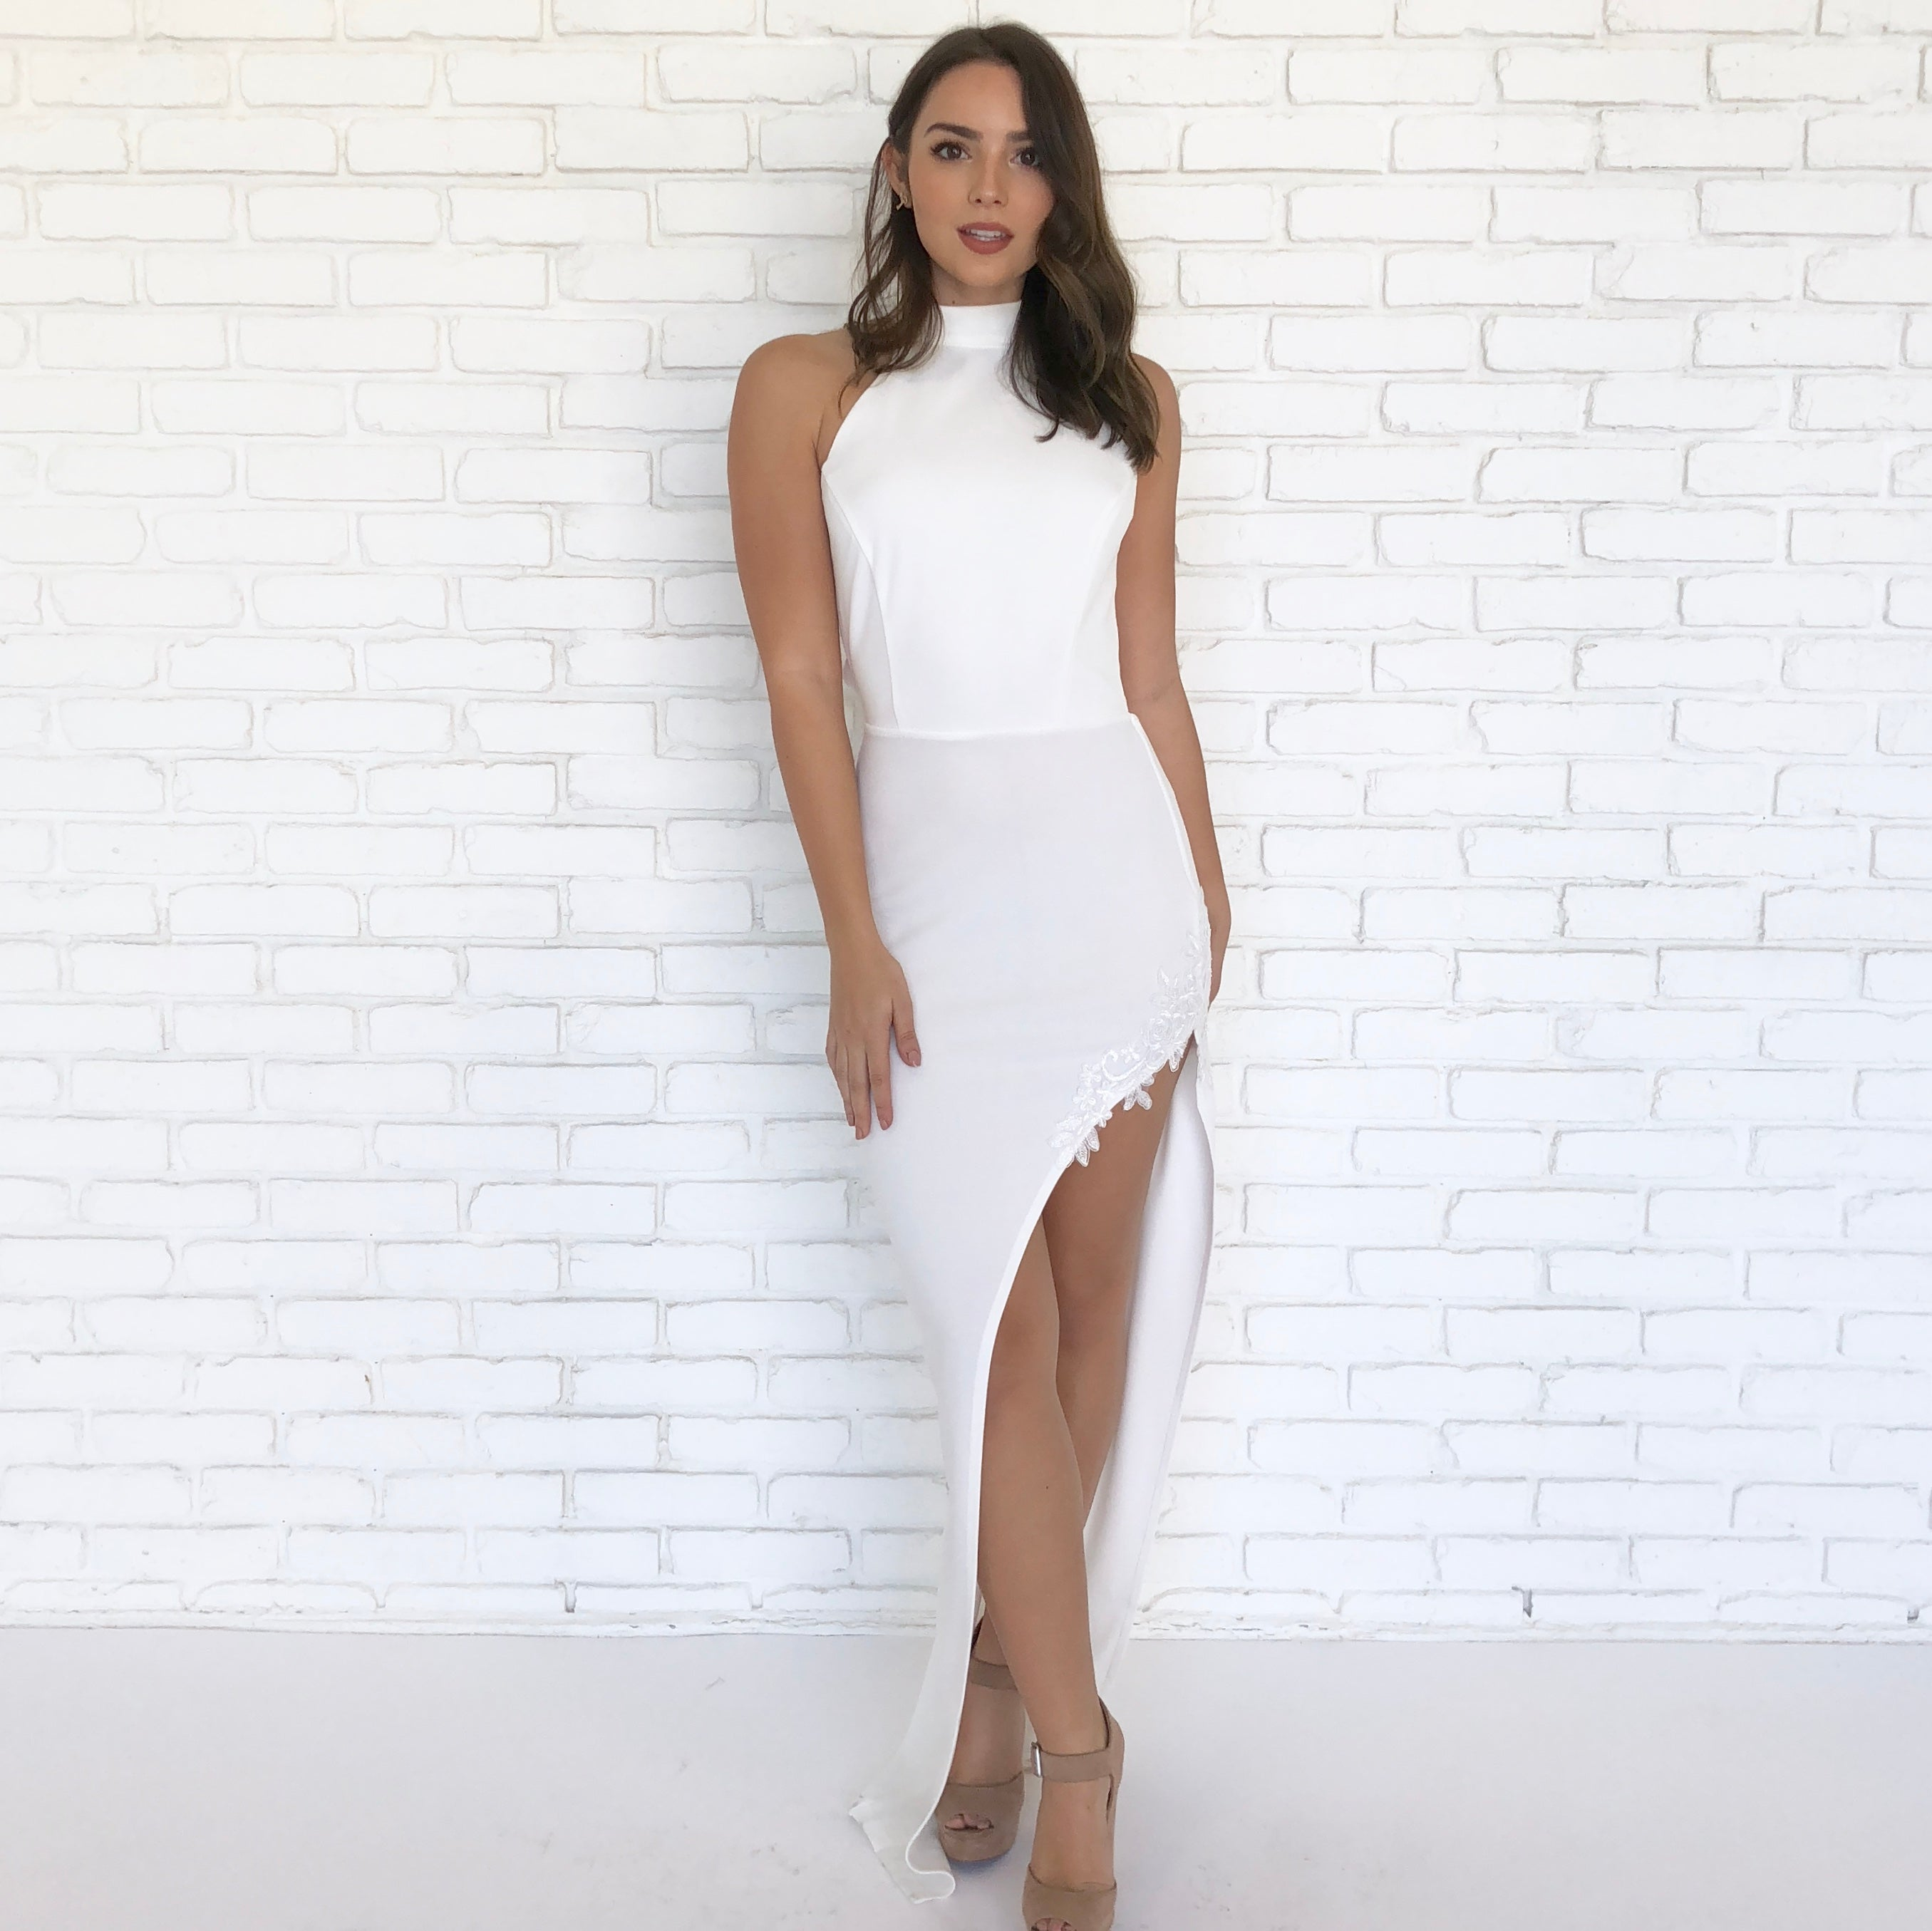 af48484541 Purity White Backless Maxi Dress - Dainty Hooligan Boutique